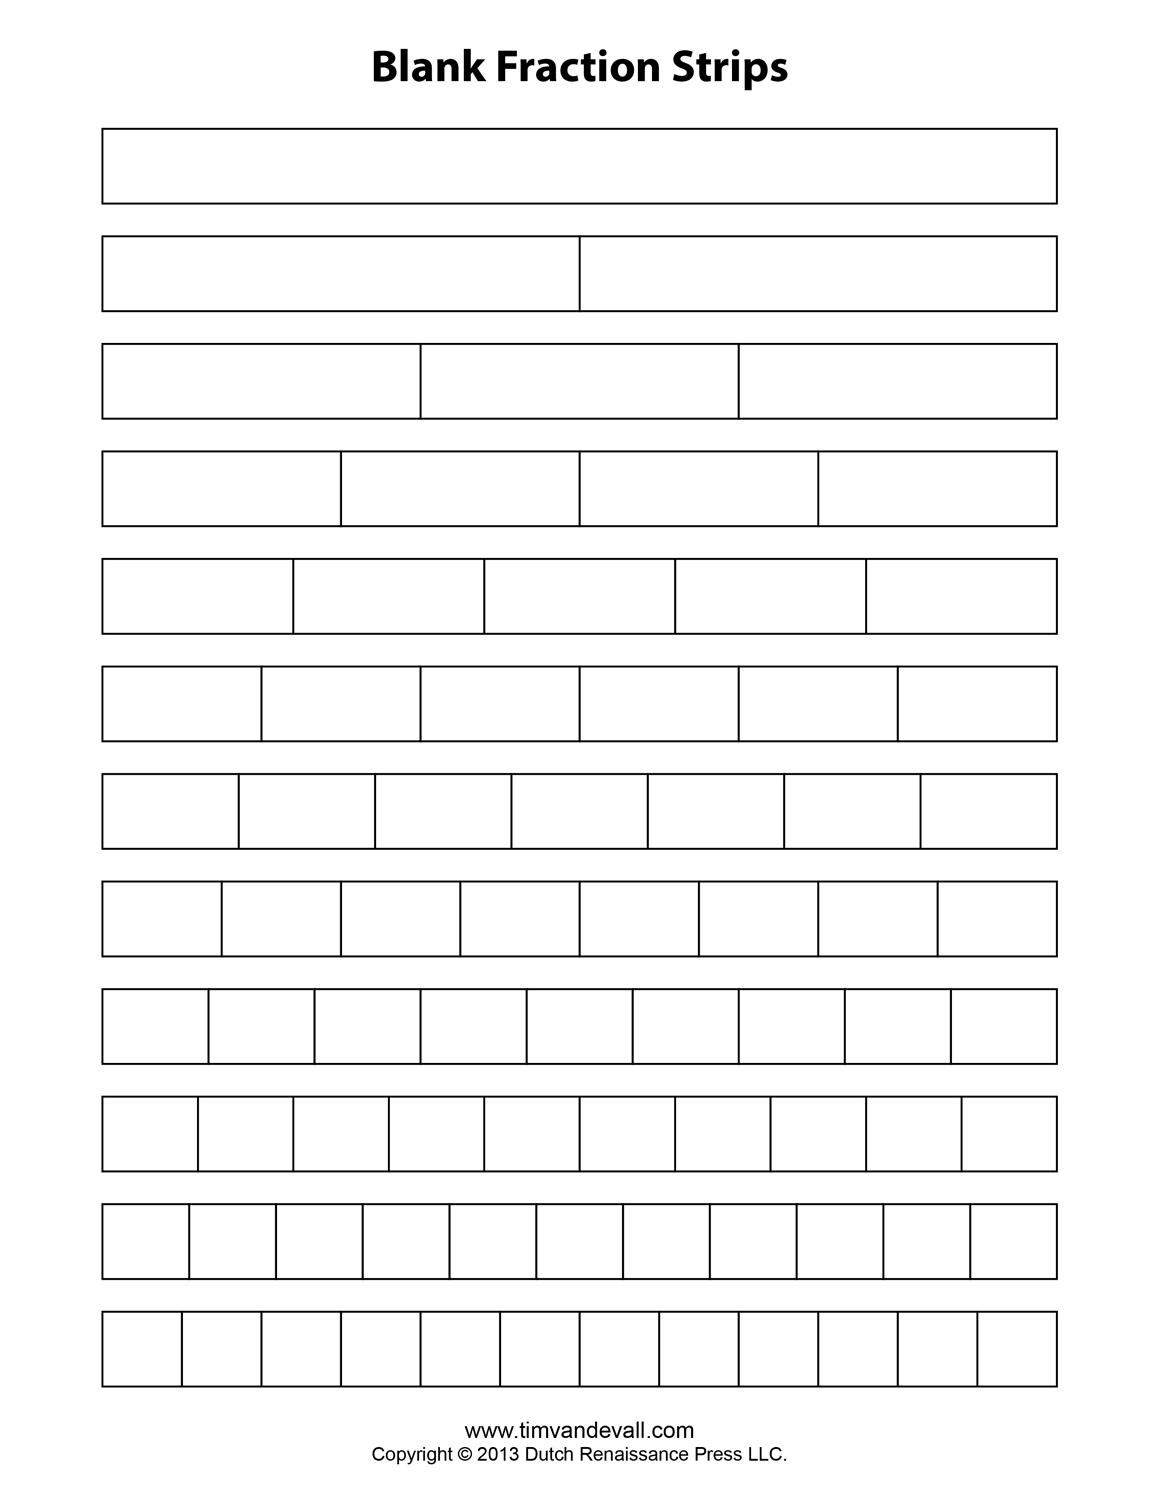 Fraction Strip Templates for Kids School Math Printables – Fraction Bar Worksheets Printable